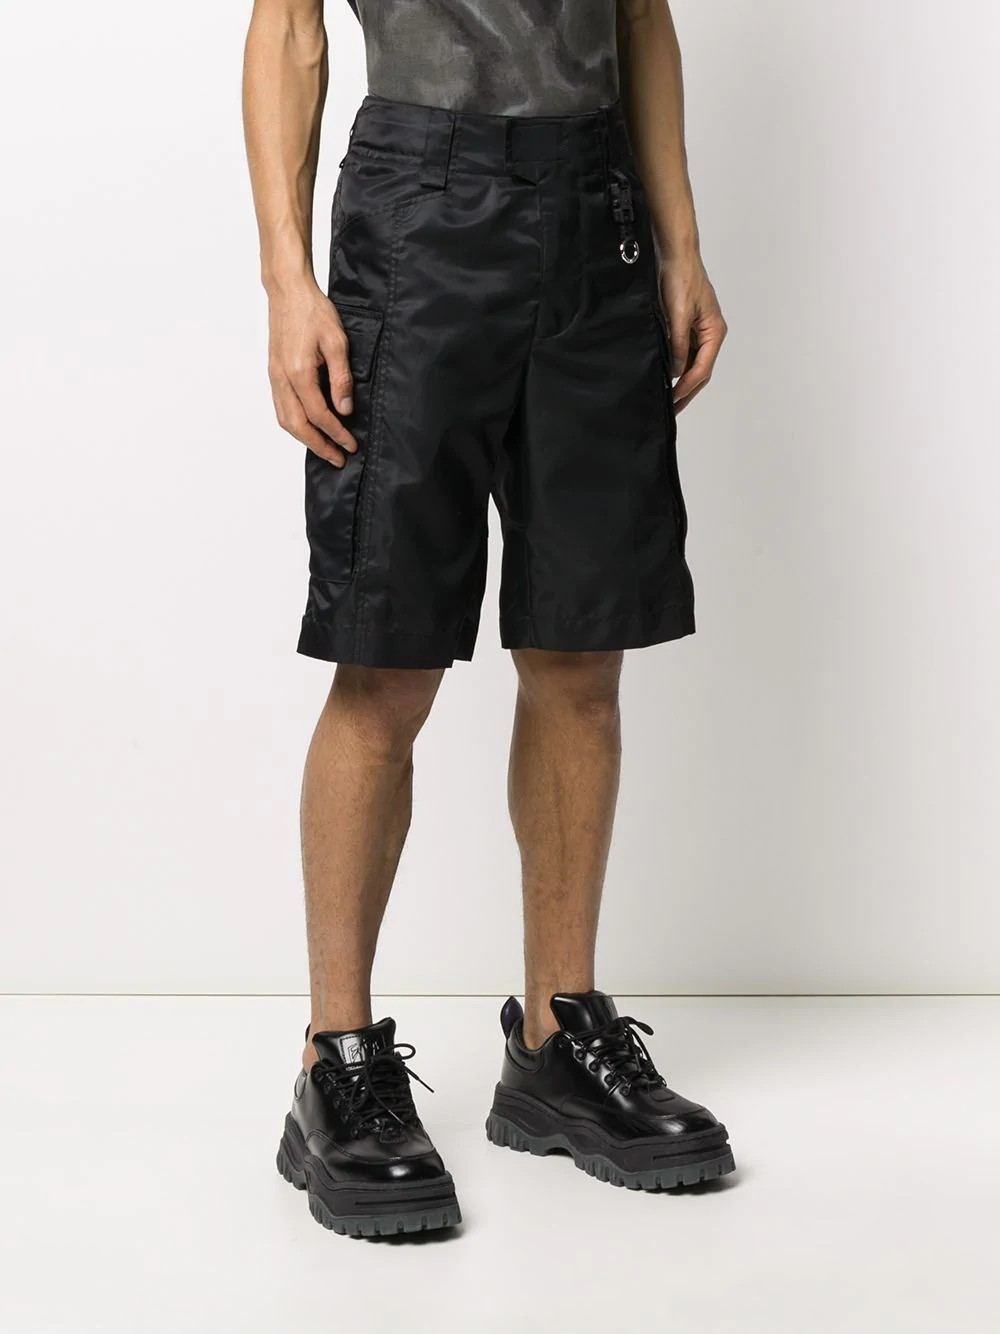 ALYX BLACK TACTICAL SHORT